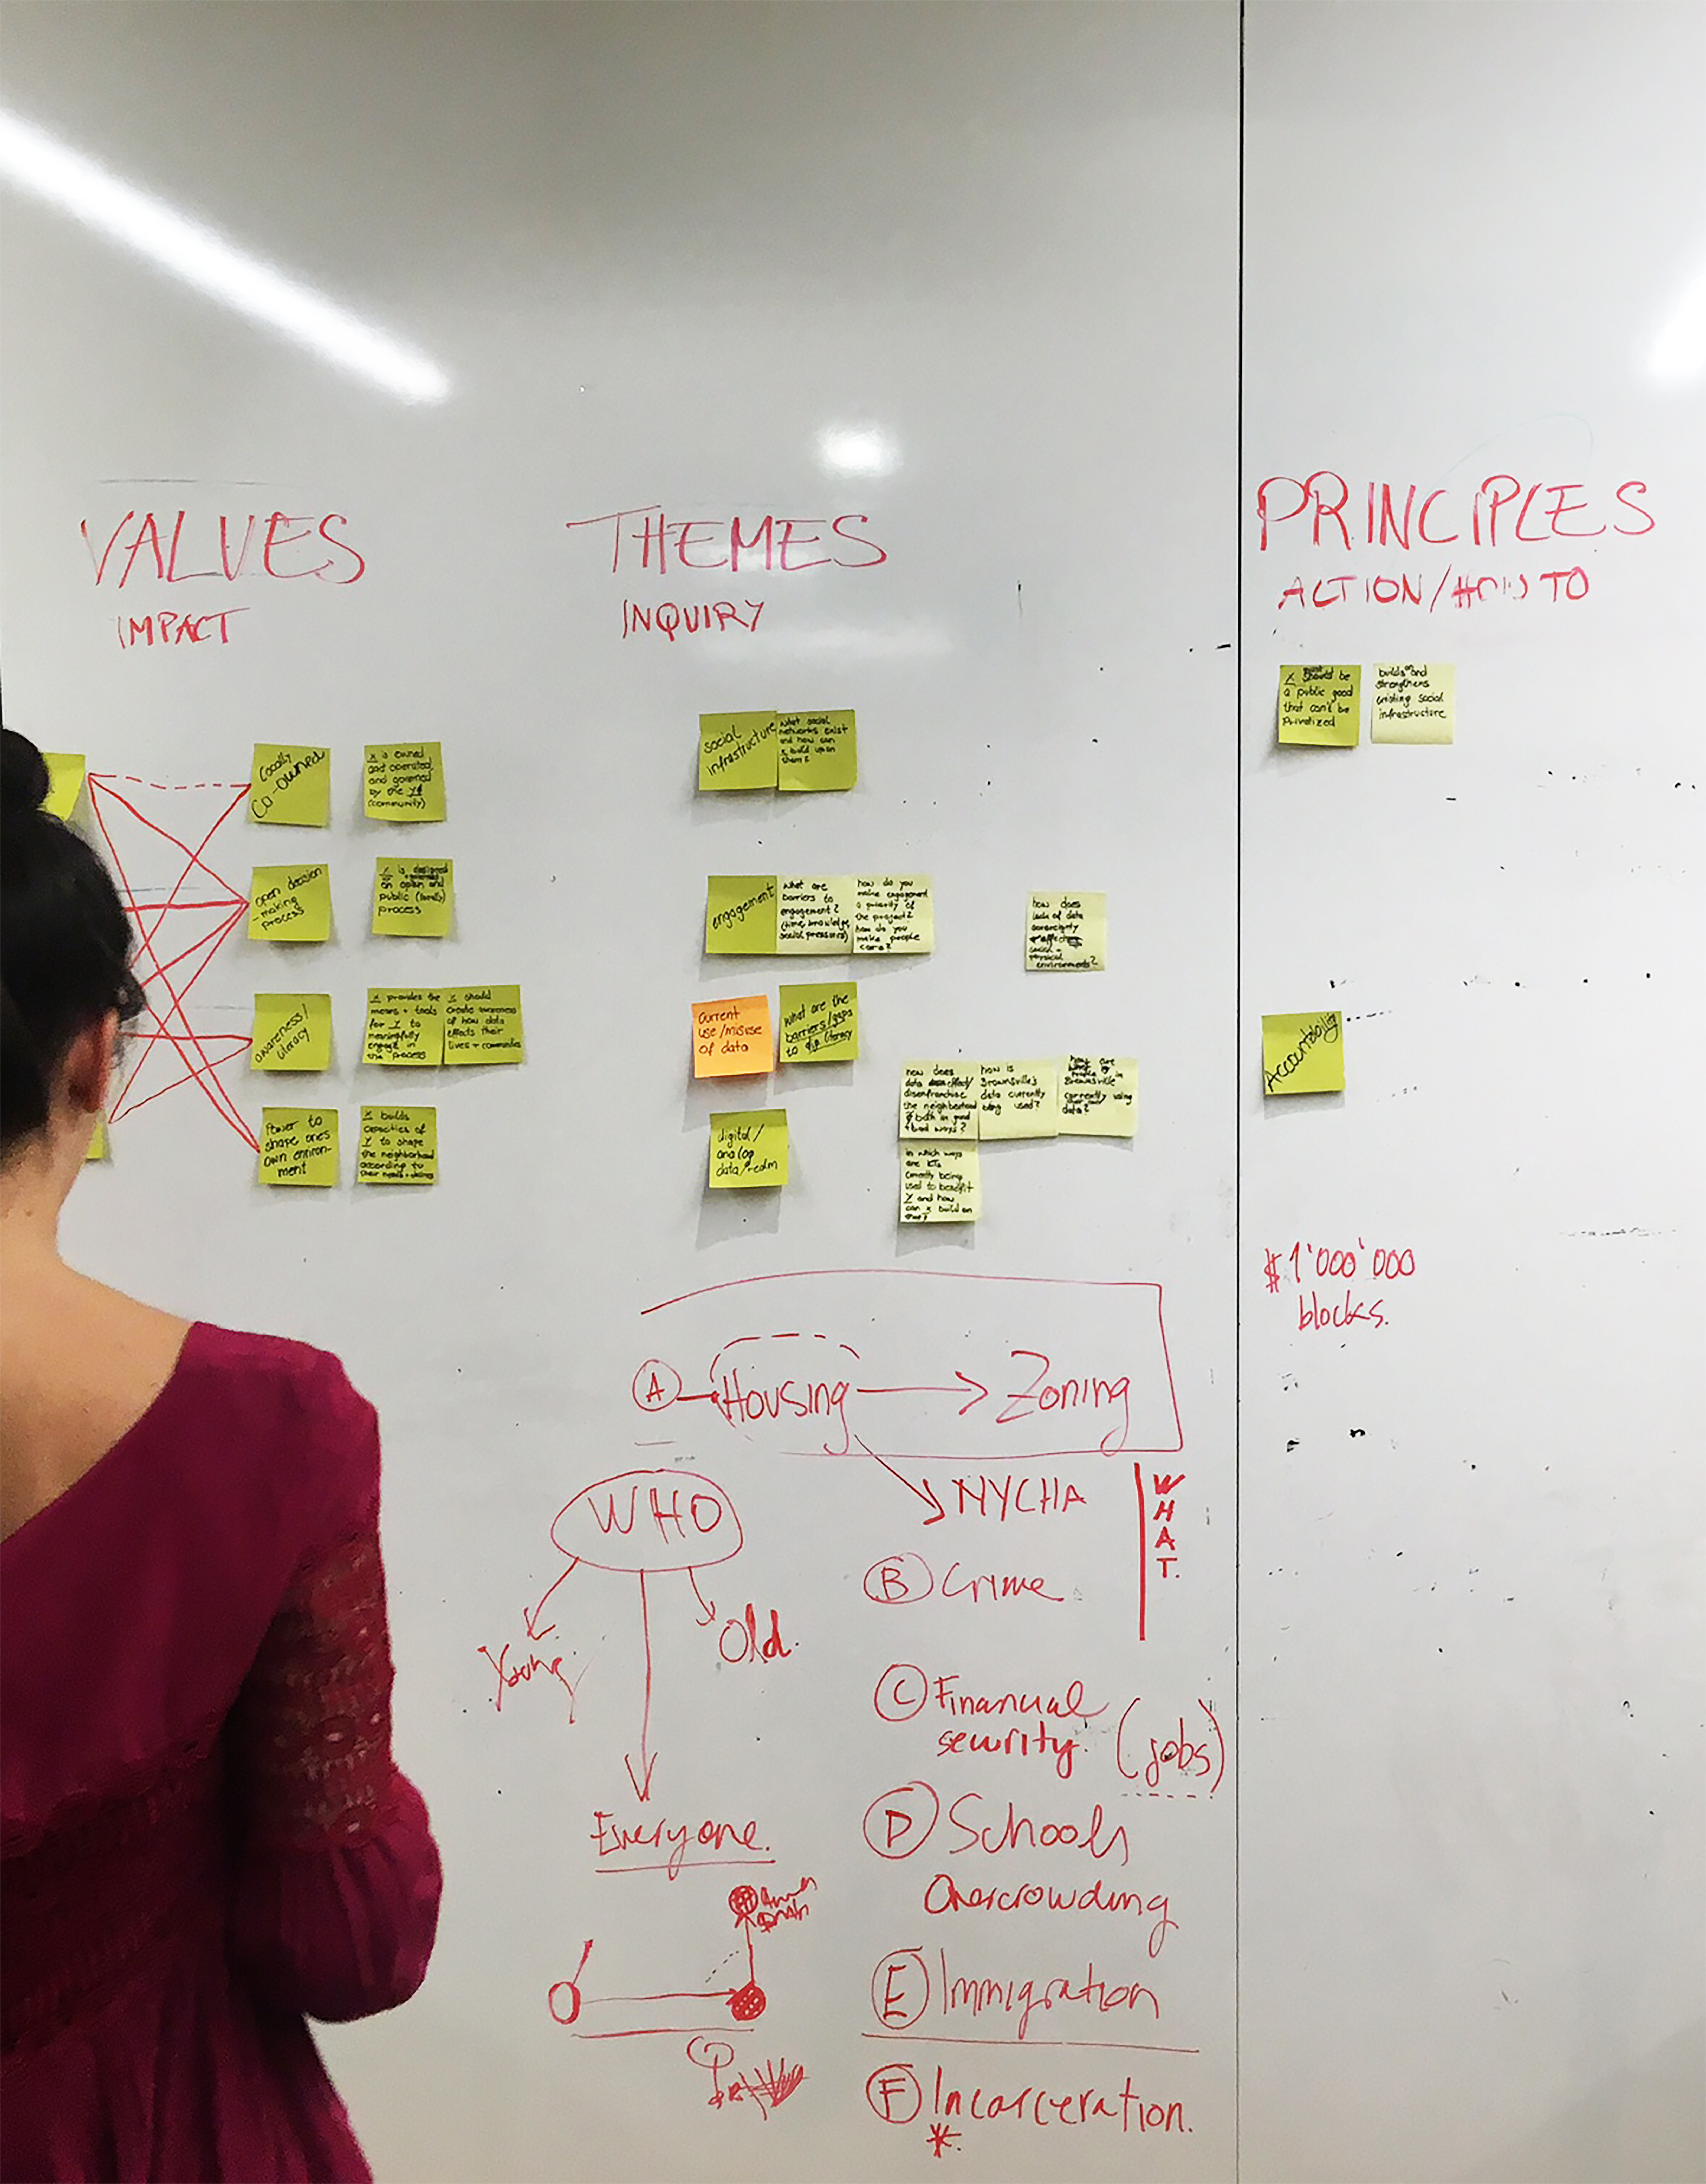 Developing Project Values